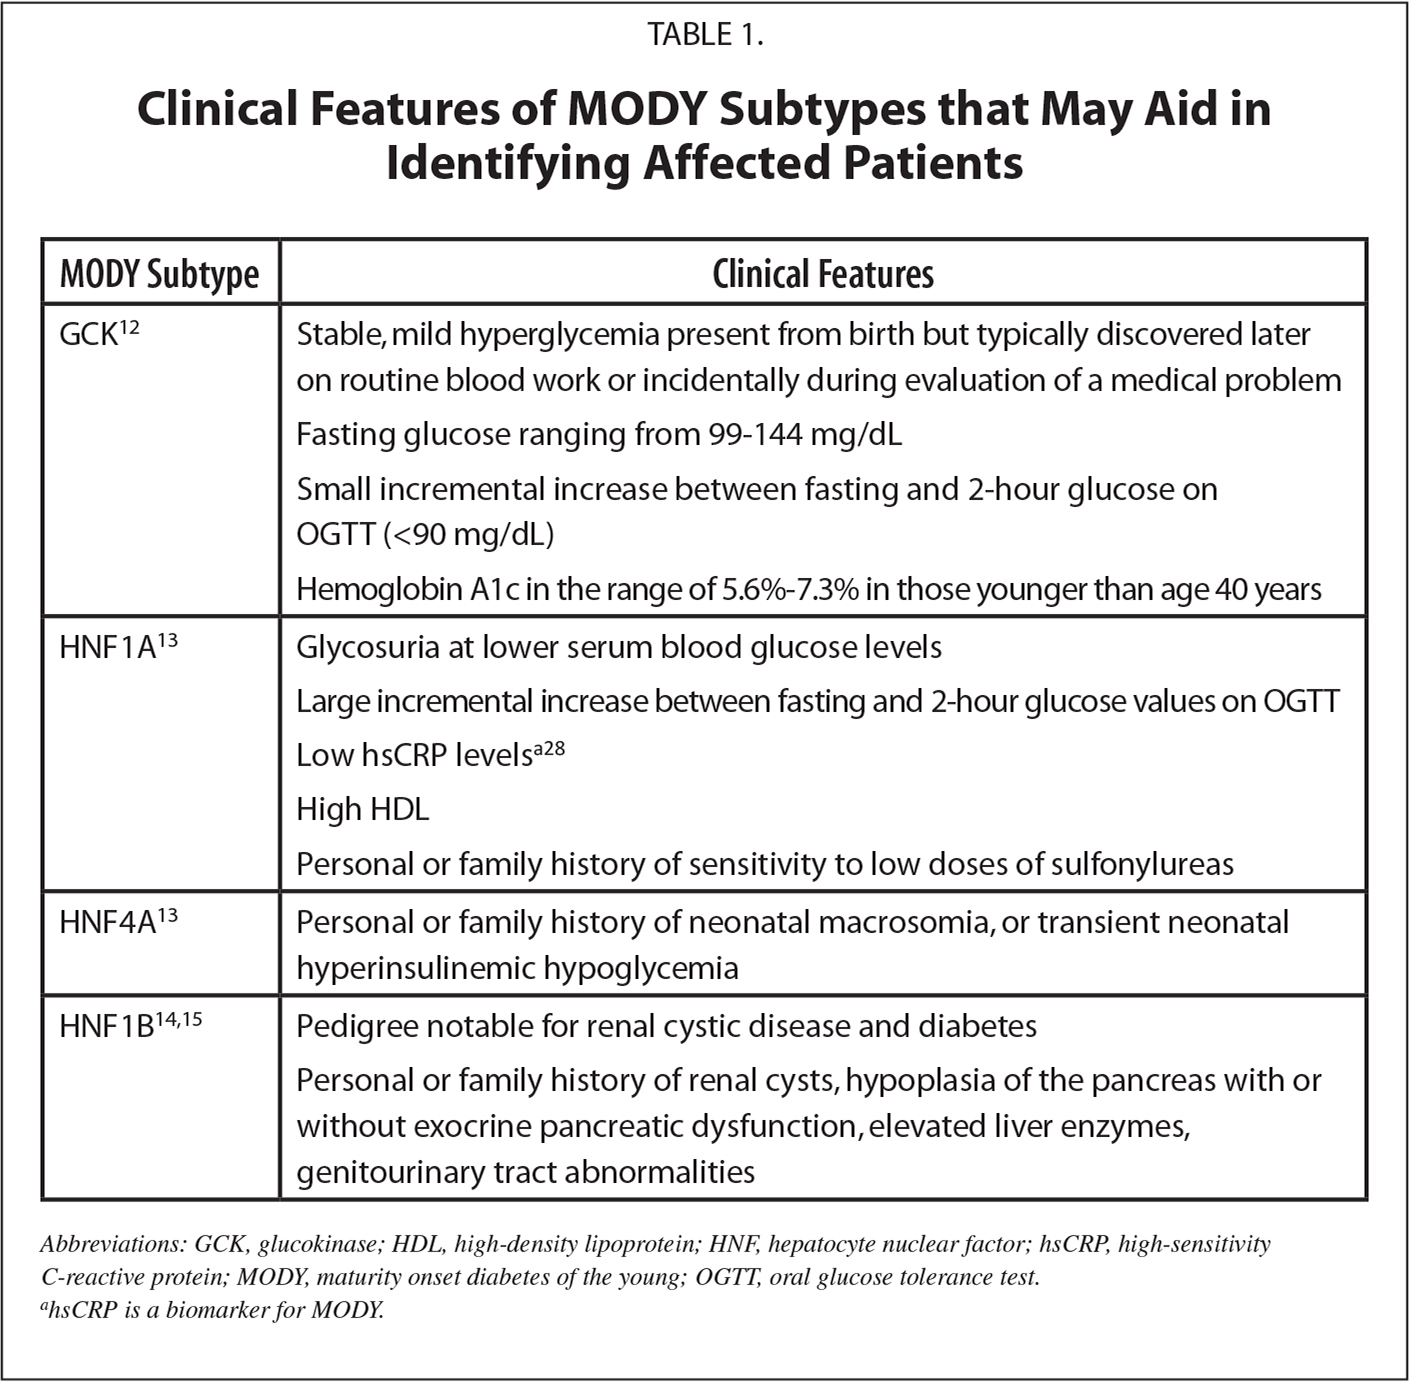 Clinical Features of MODY Subtypes that May Aid in Identifying Affected Patients